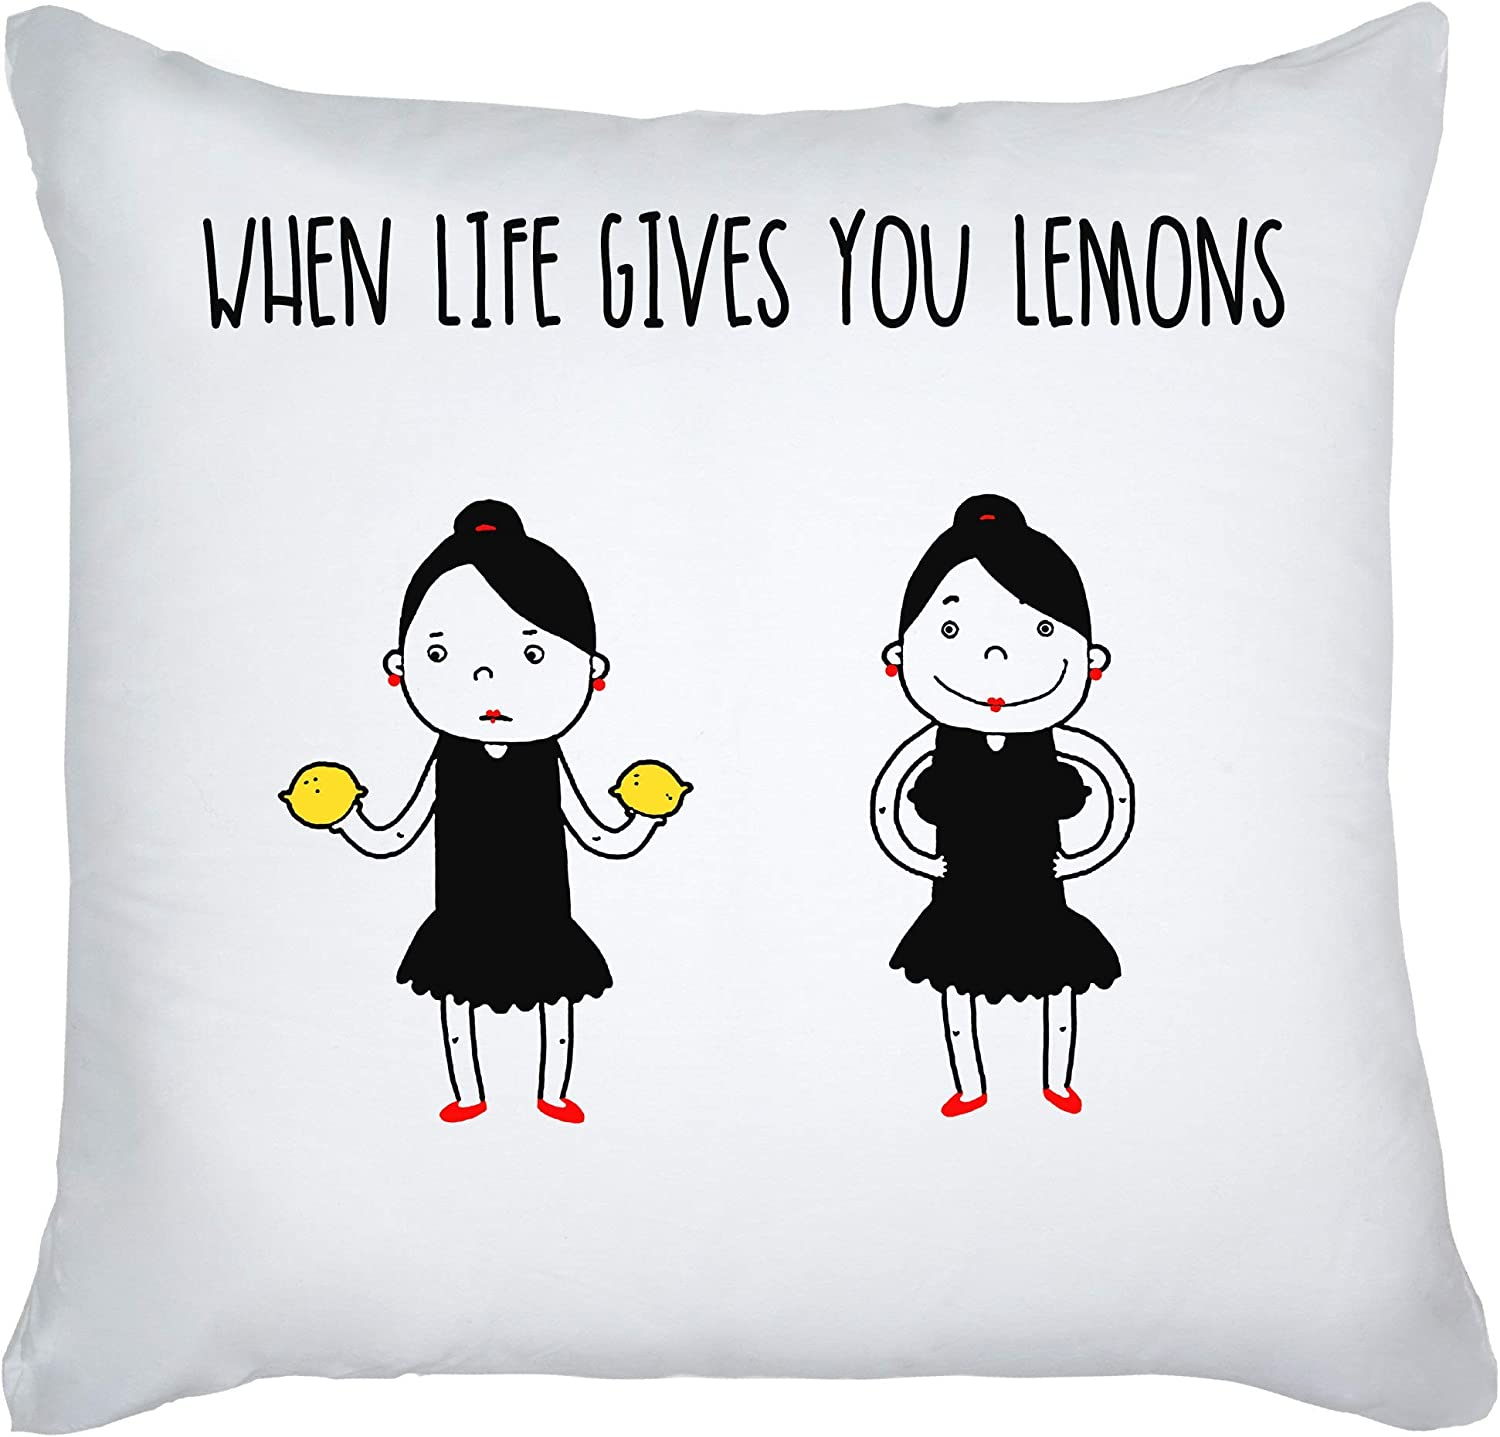 how to use decorative pillows amazon com graphke when life gives you lemons use it decorative how to use throw pillows on a bed amazon com graphke when life gives you